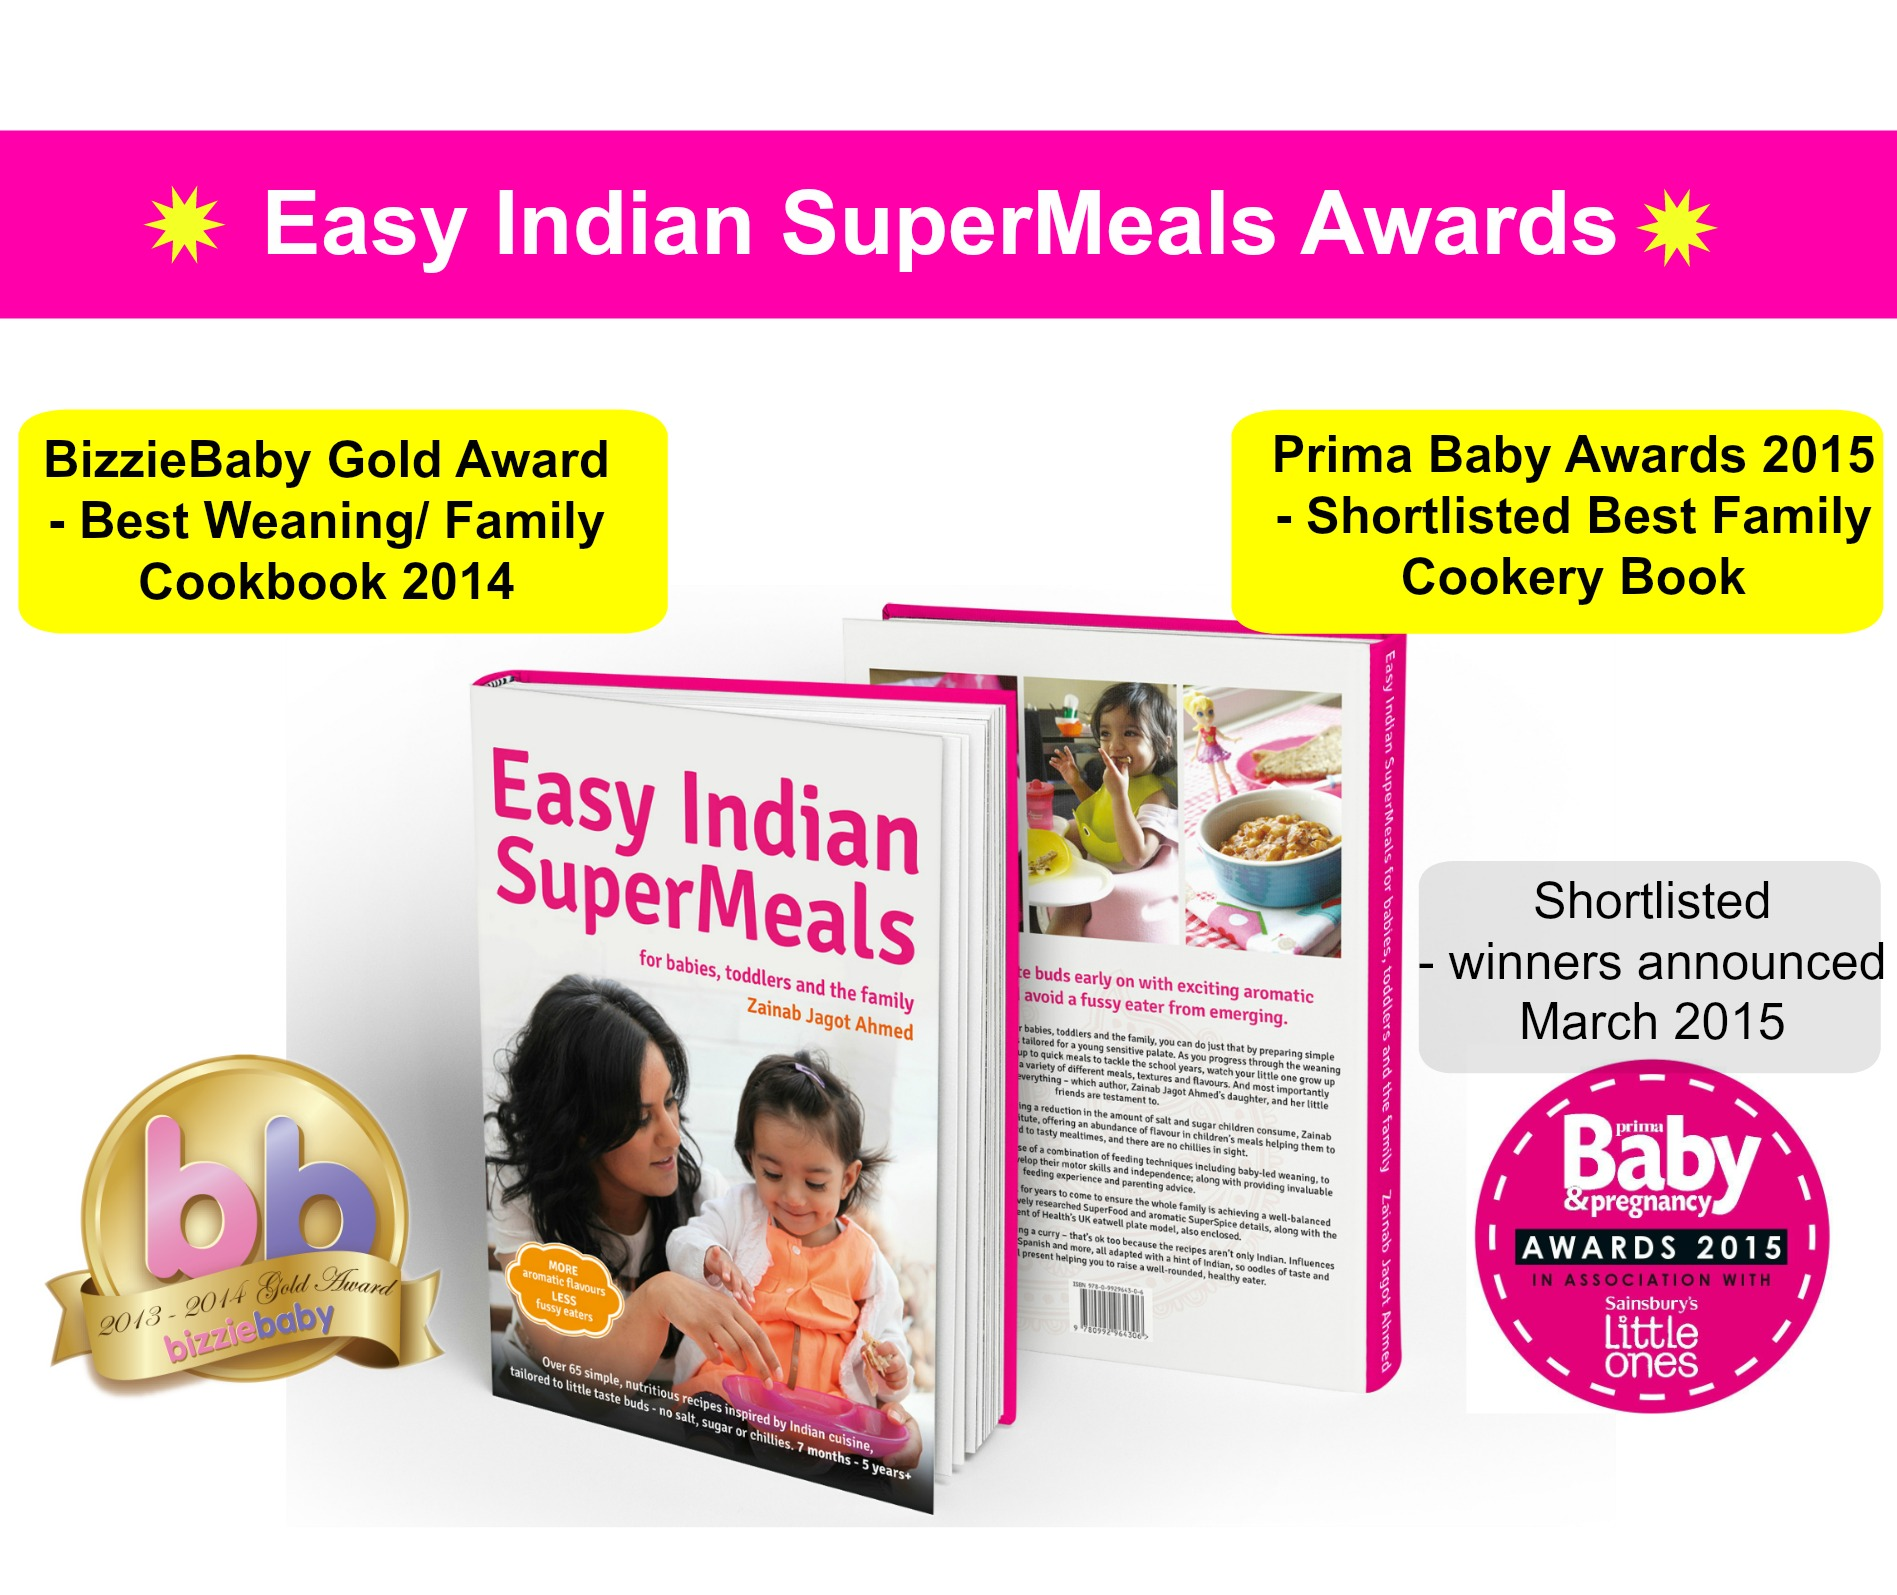 Awards and Shortlist